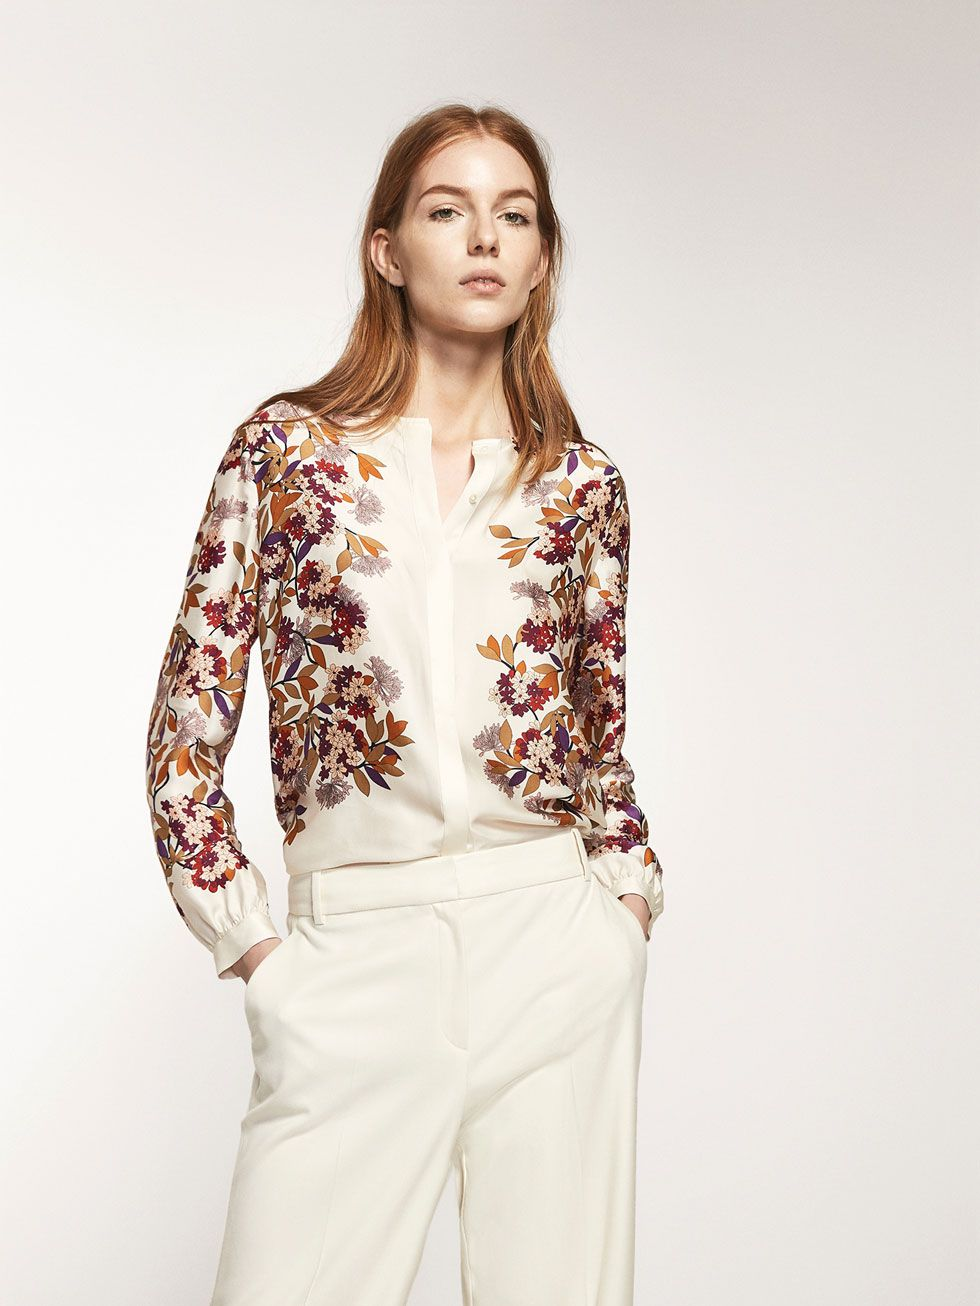 9bac18b411f Autumn winter 2016 Women´s POSITIONAL FLORAL PRINTED SHIRT at Massimo Dutti  for 89.5. Effortless elegance!